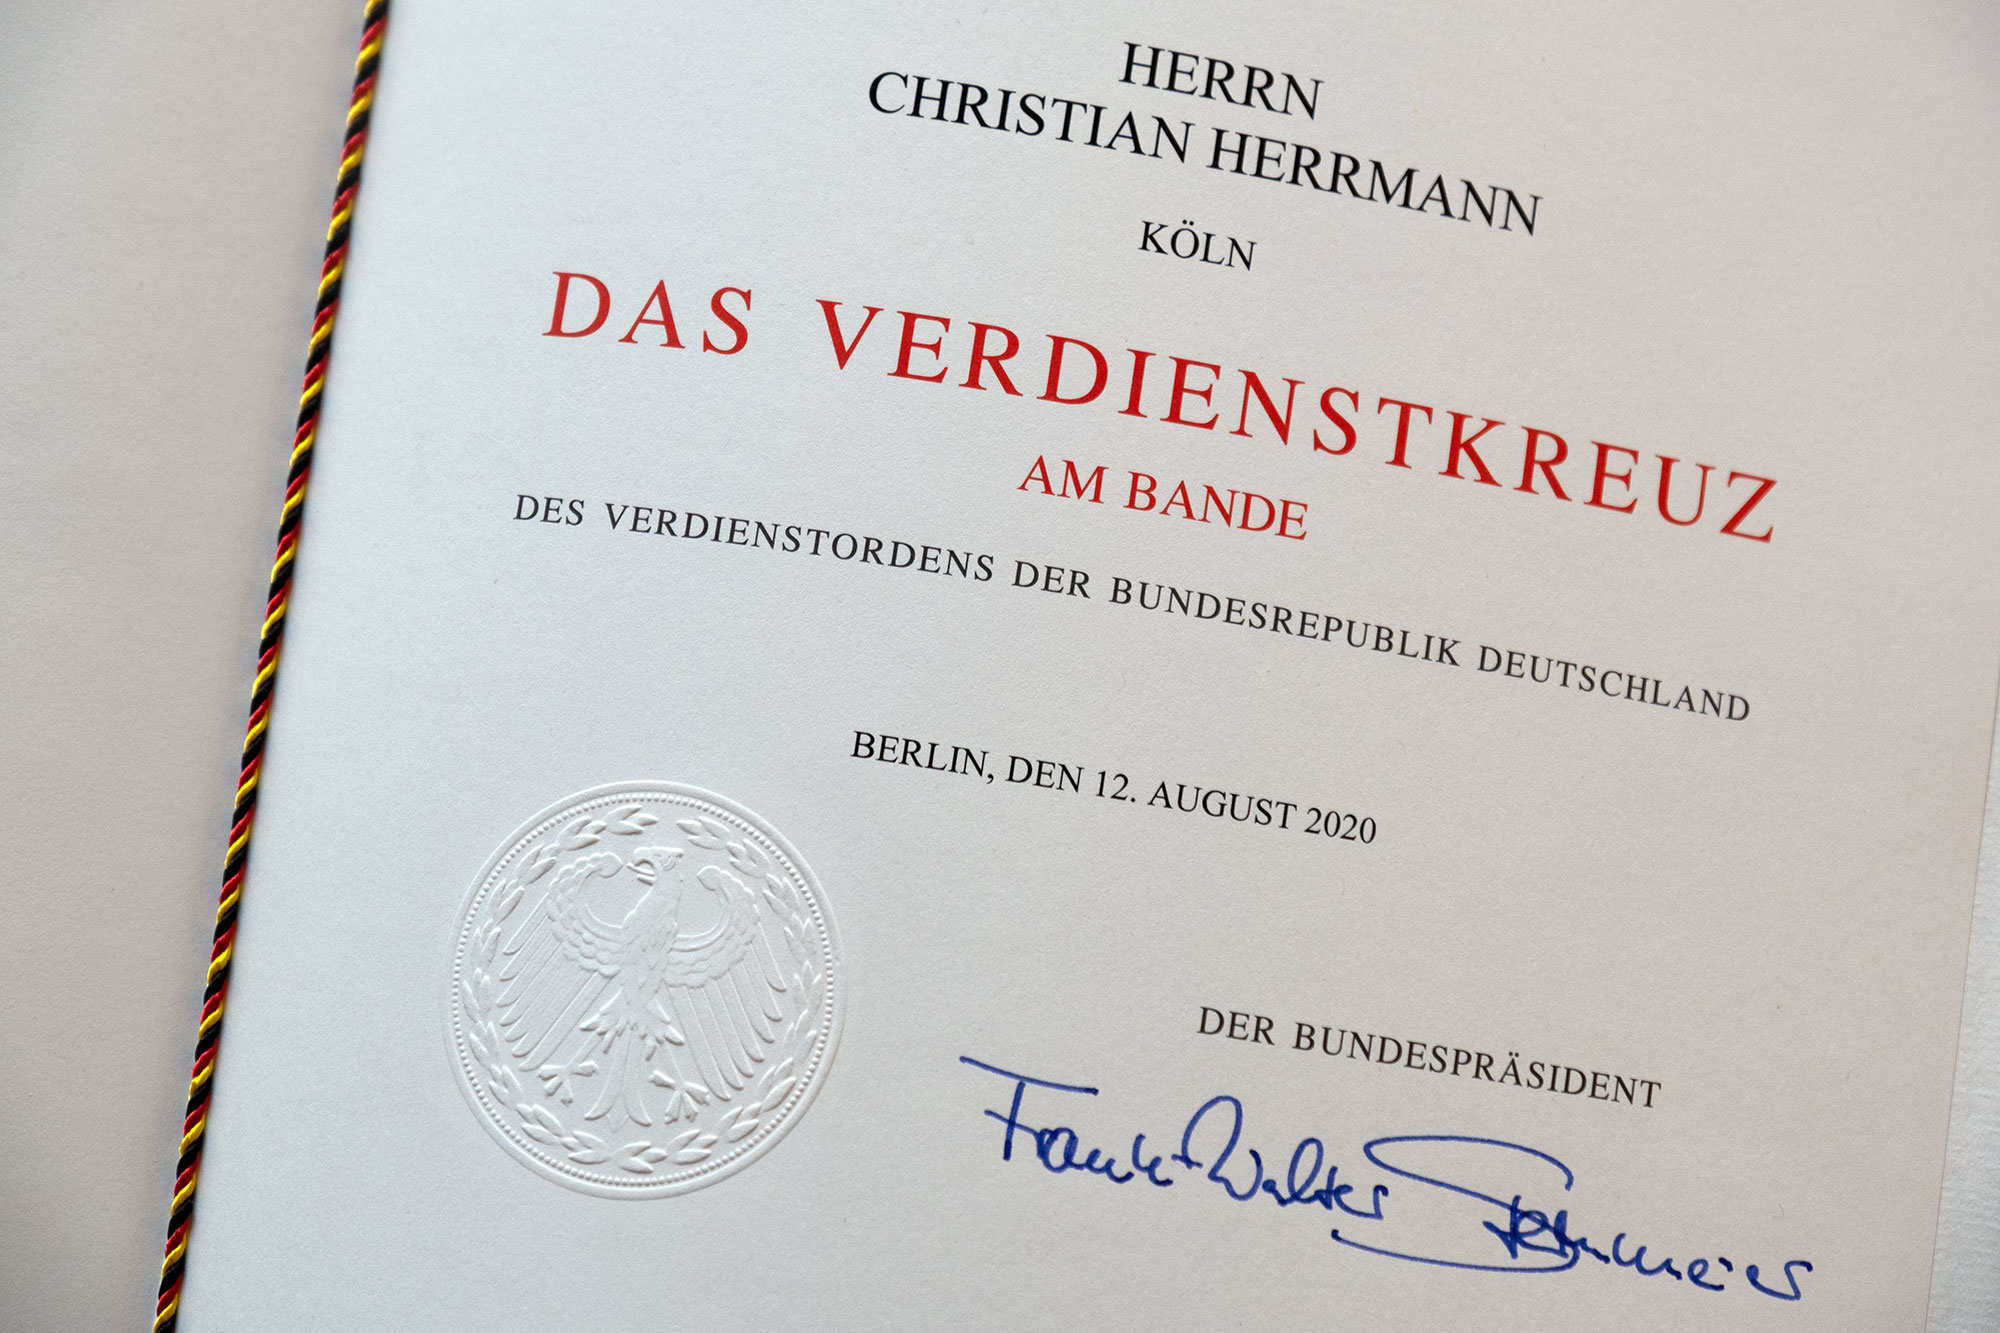 Order of Merit of the Federal Republic of Germany - award certificate